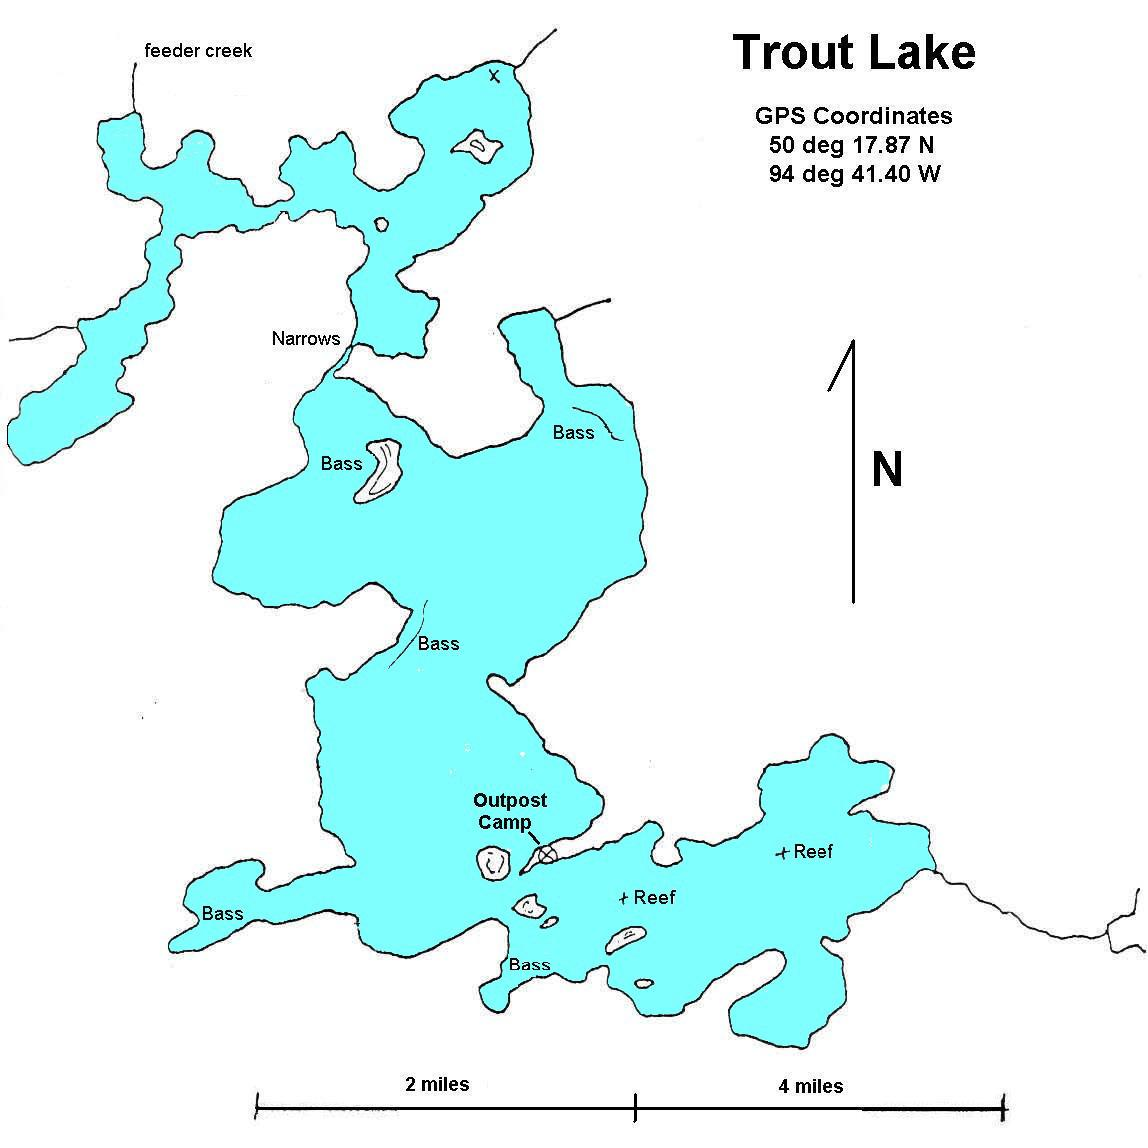 Trout Lake Walsten Outposts